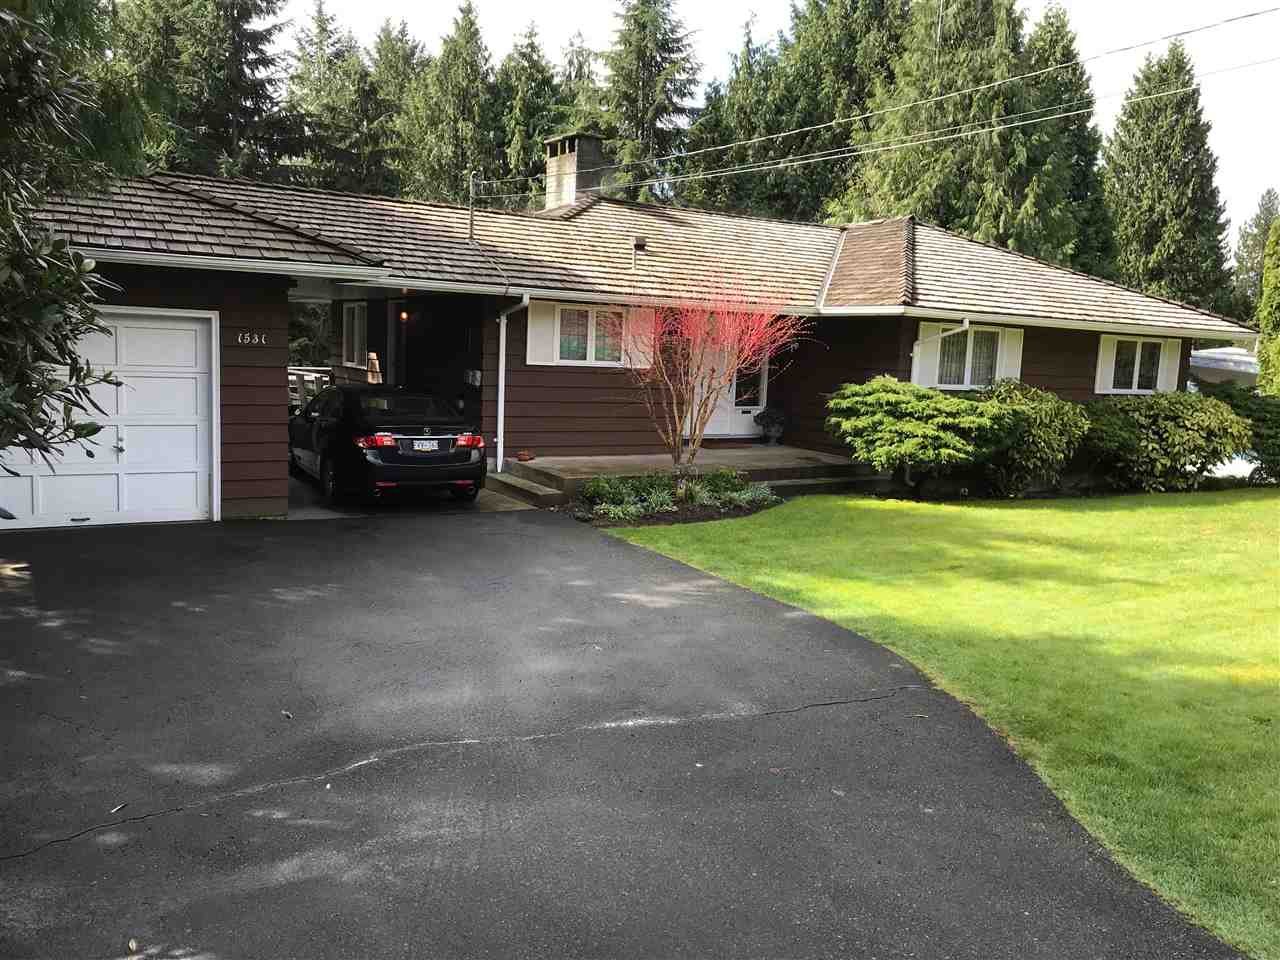 1531 COLEMAN STREET - Lynn Valley House/Single Family for sale, 4 Bedrooms (R2462908) - #1